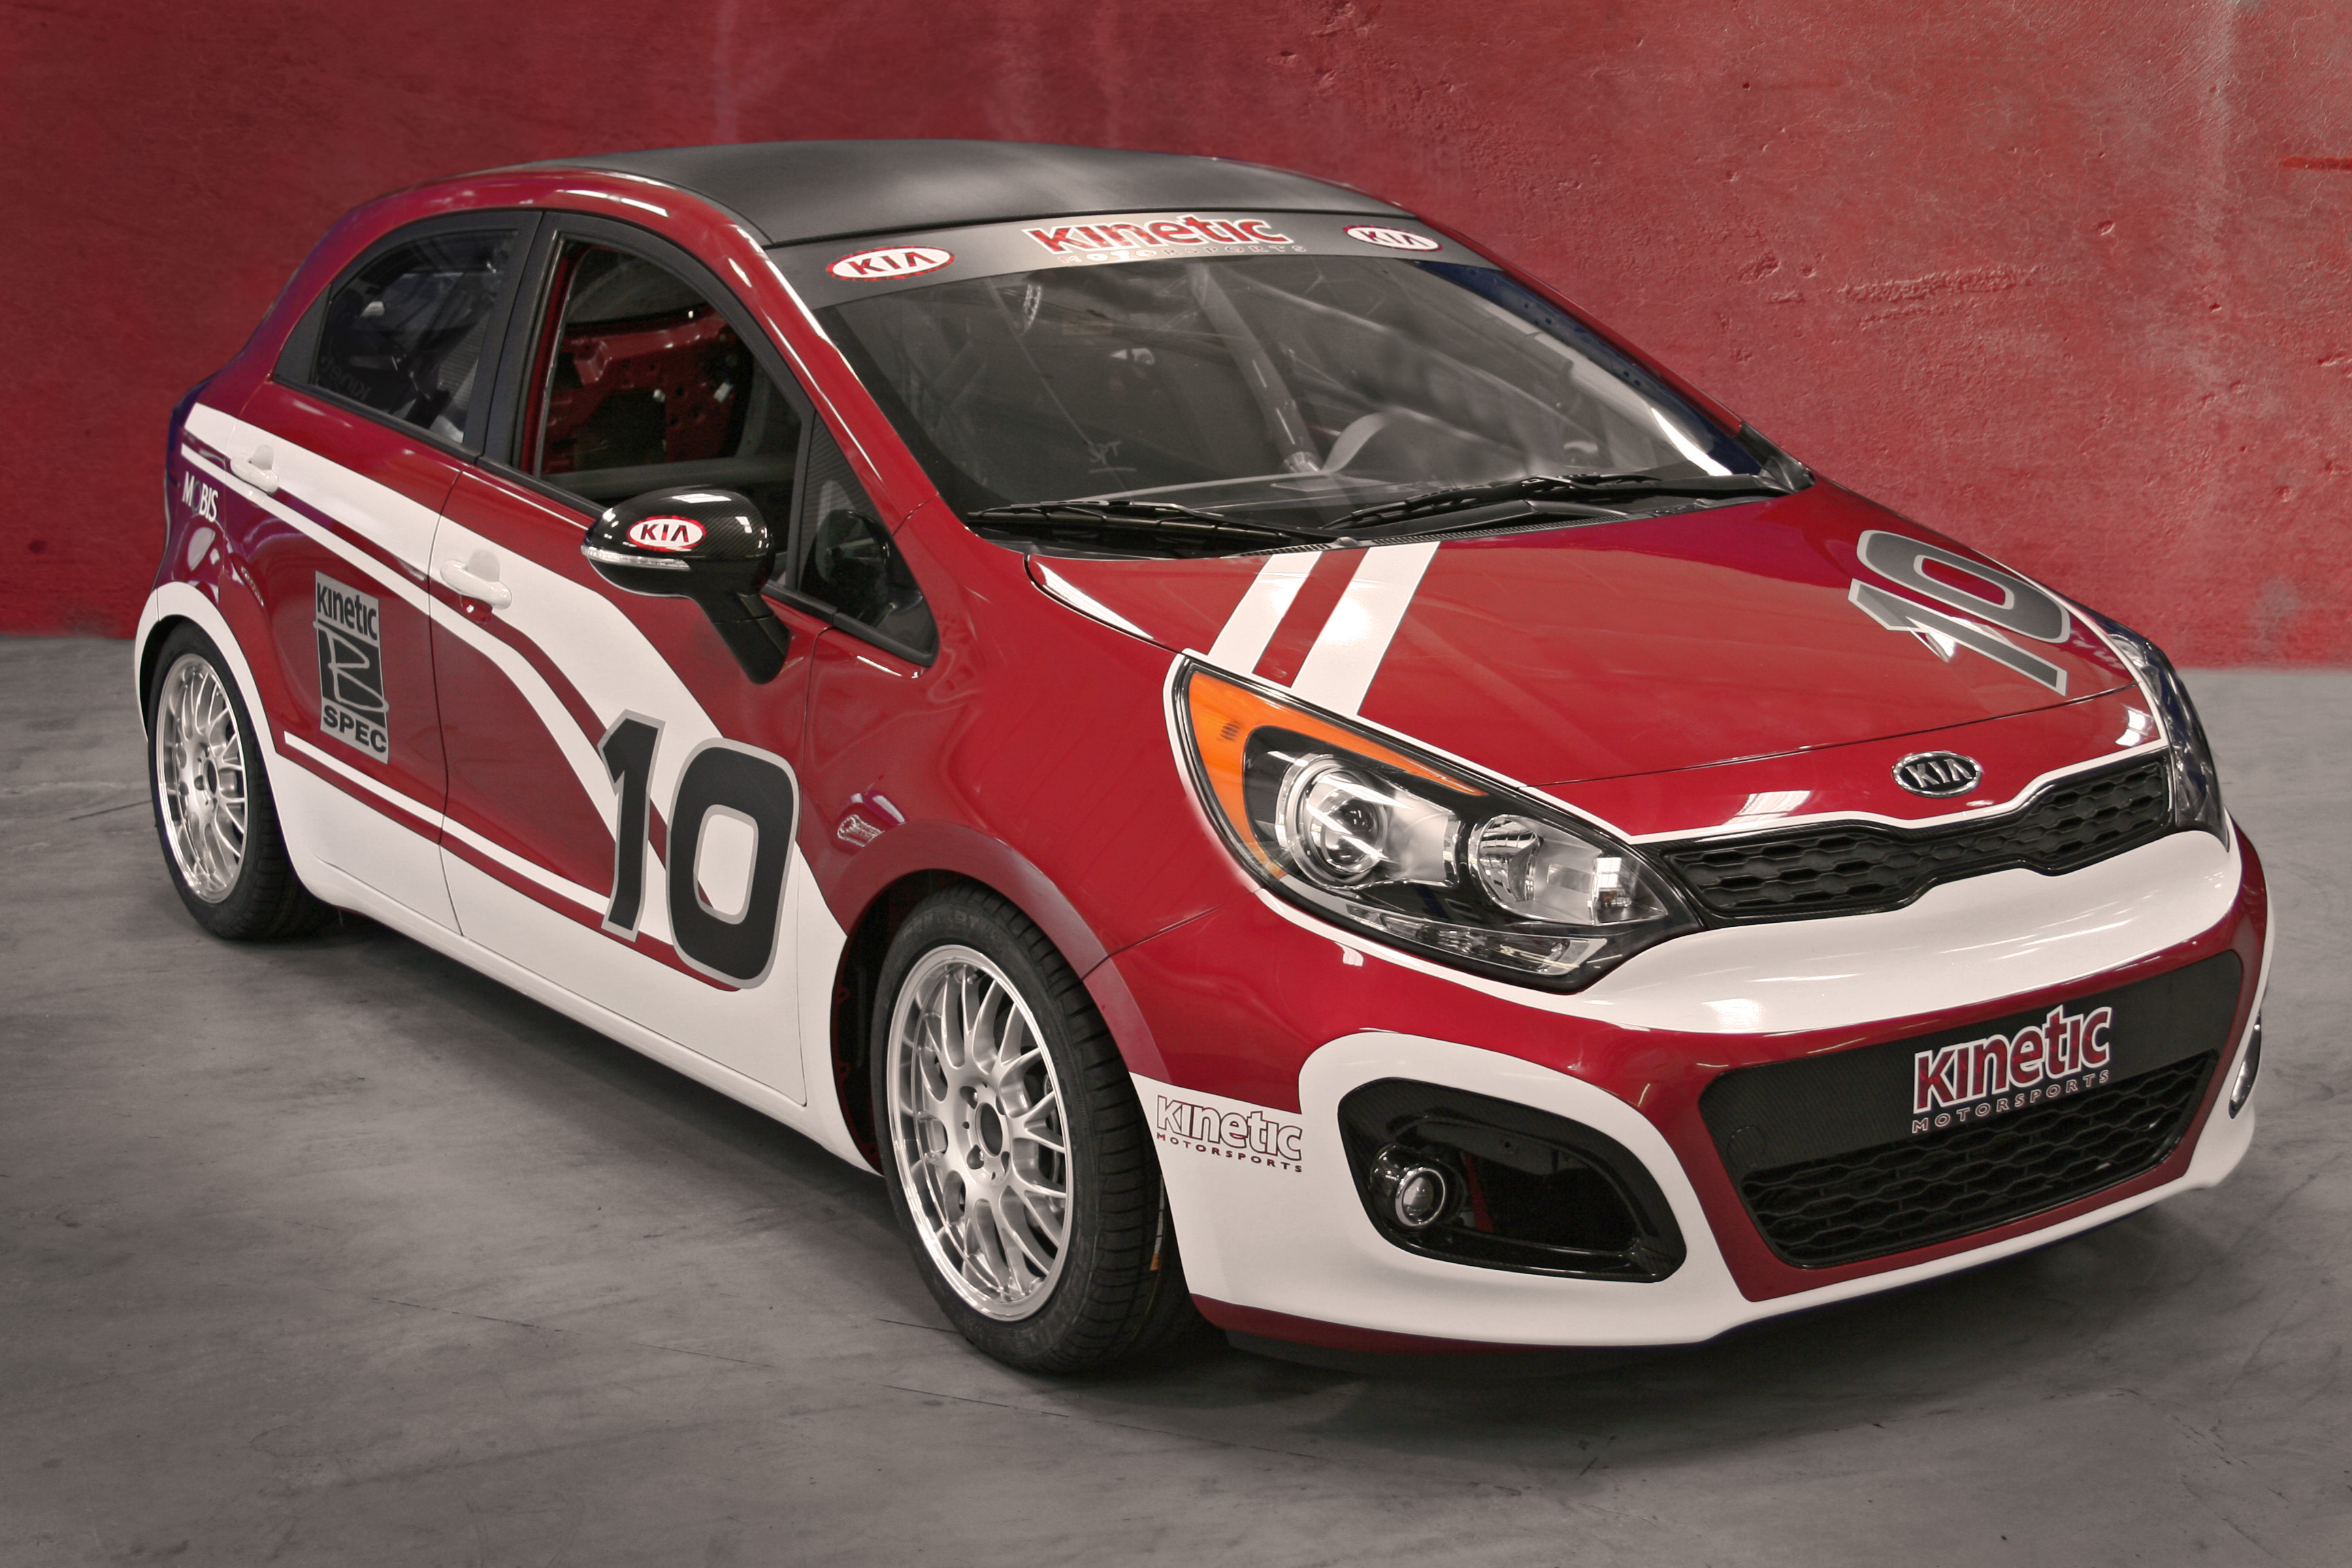 kia rio b spec race car to debut at 2011 sema. Black Bedroom Furniture Sets. Home Design Ideas